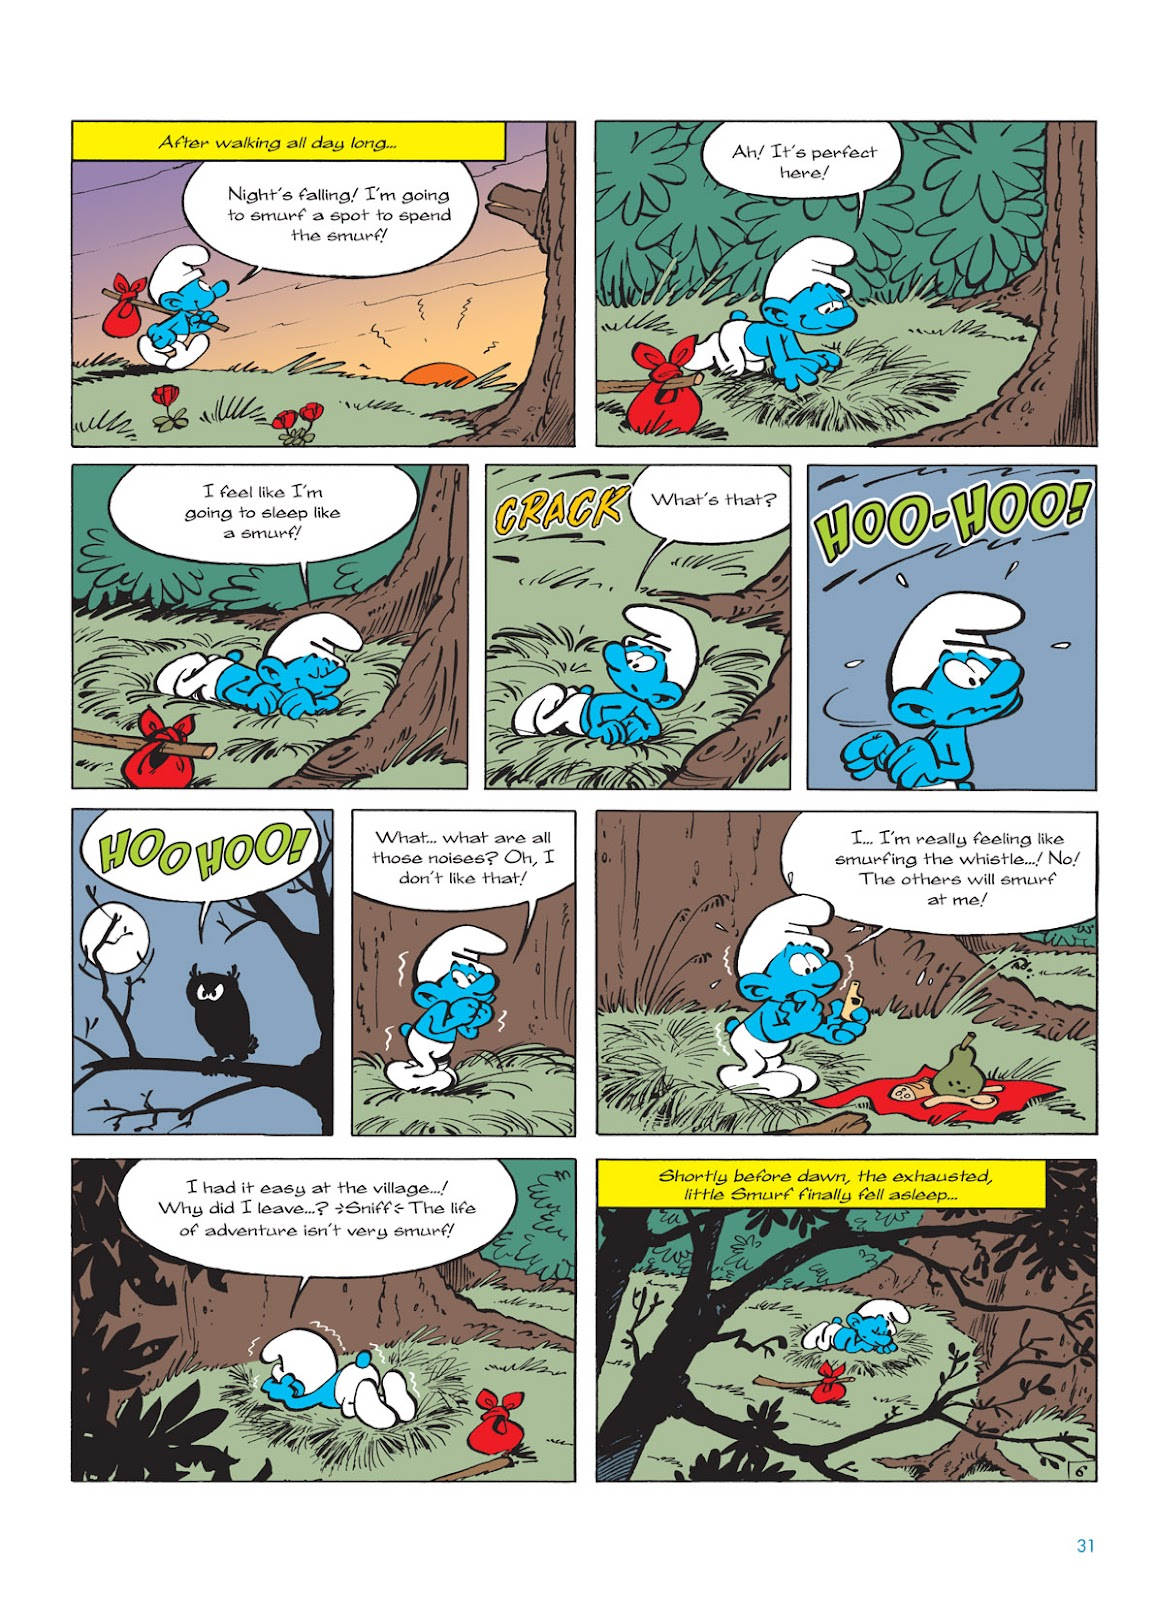 Read online The Smurfs comic -  Issue #9 - 31